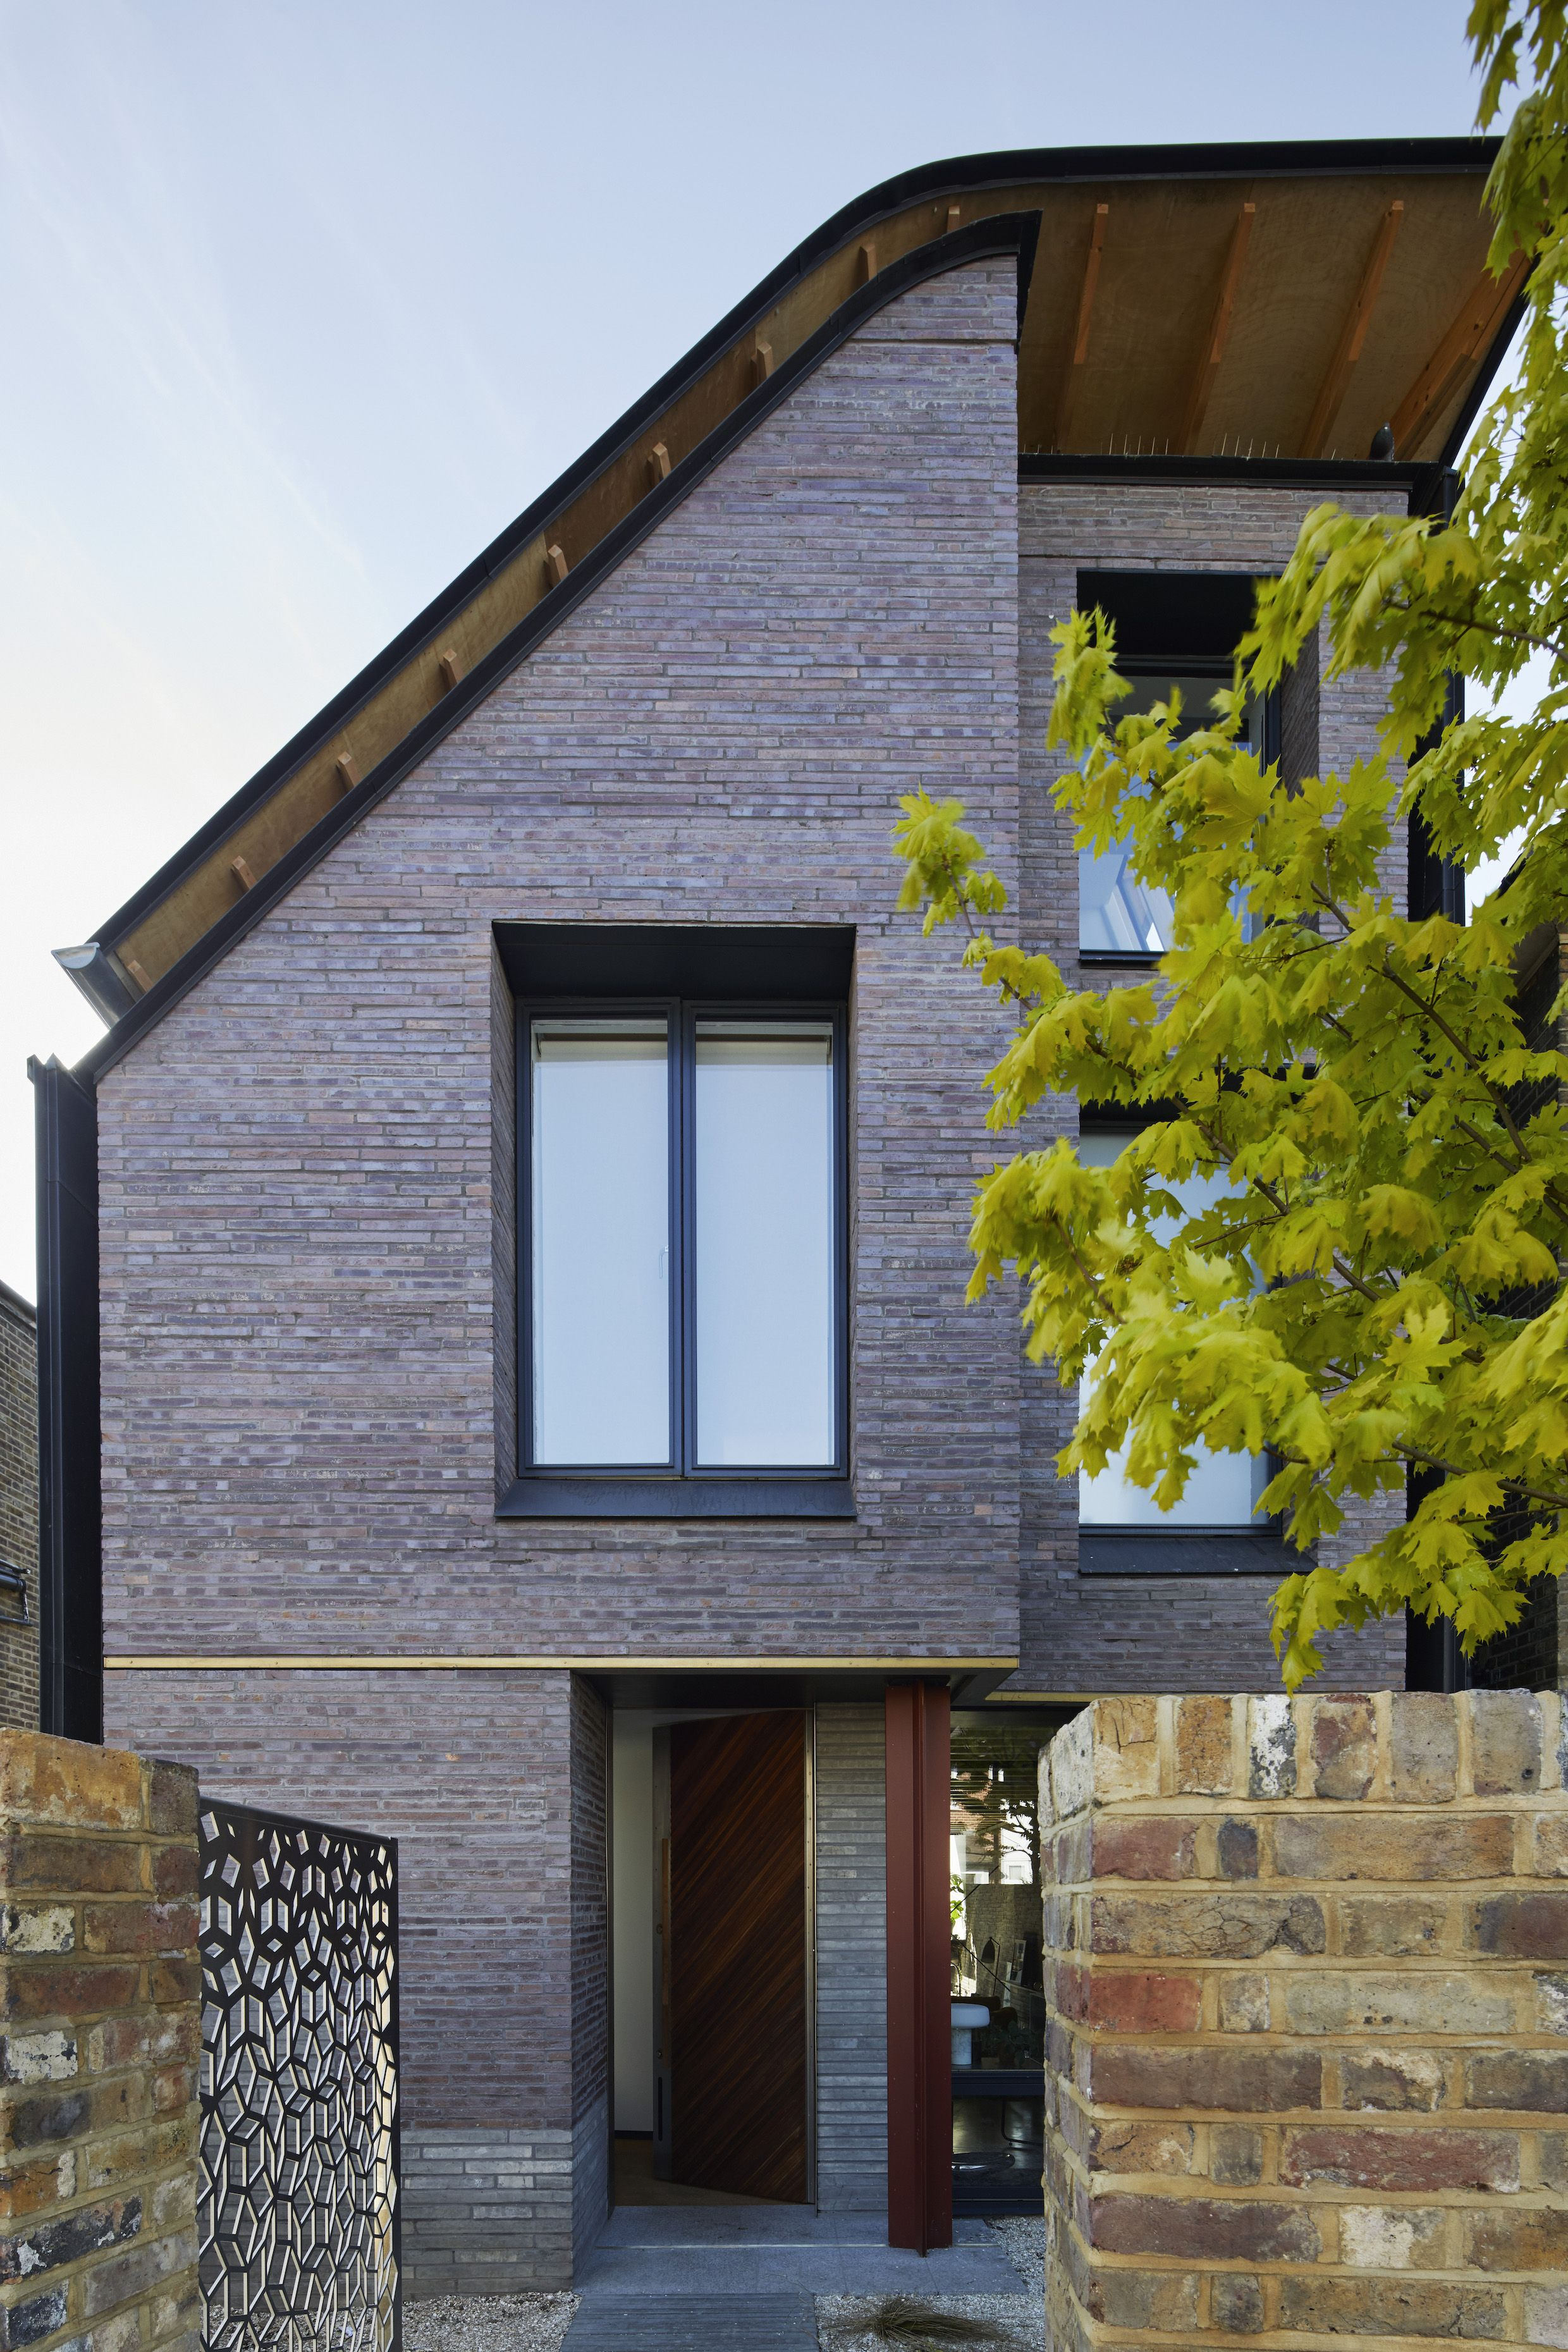 Lochside House Wins RIBA House of the Year 2018 - Grand Designs: House of the Year